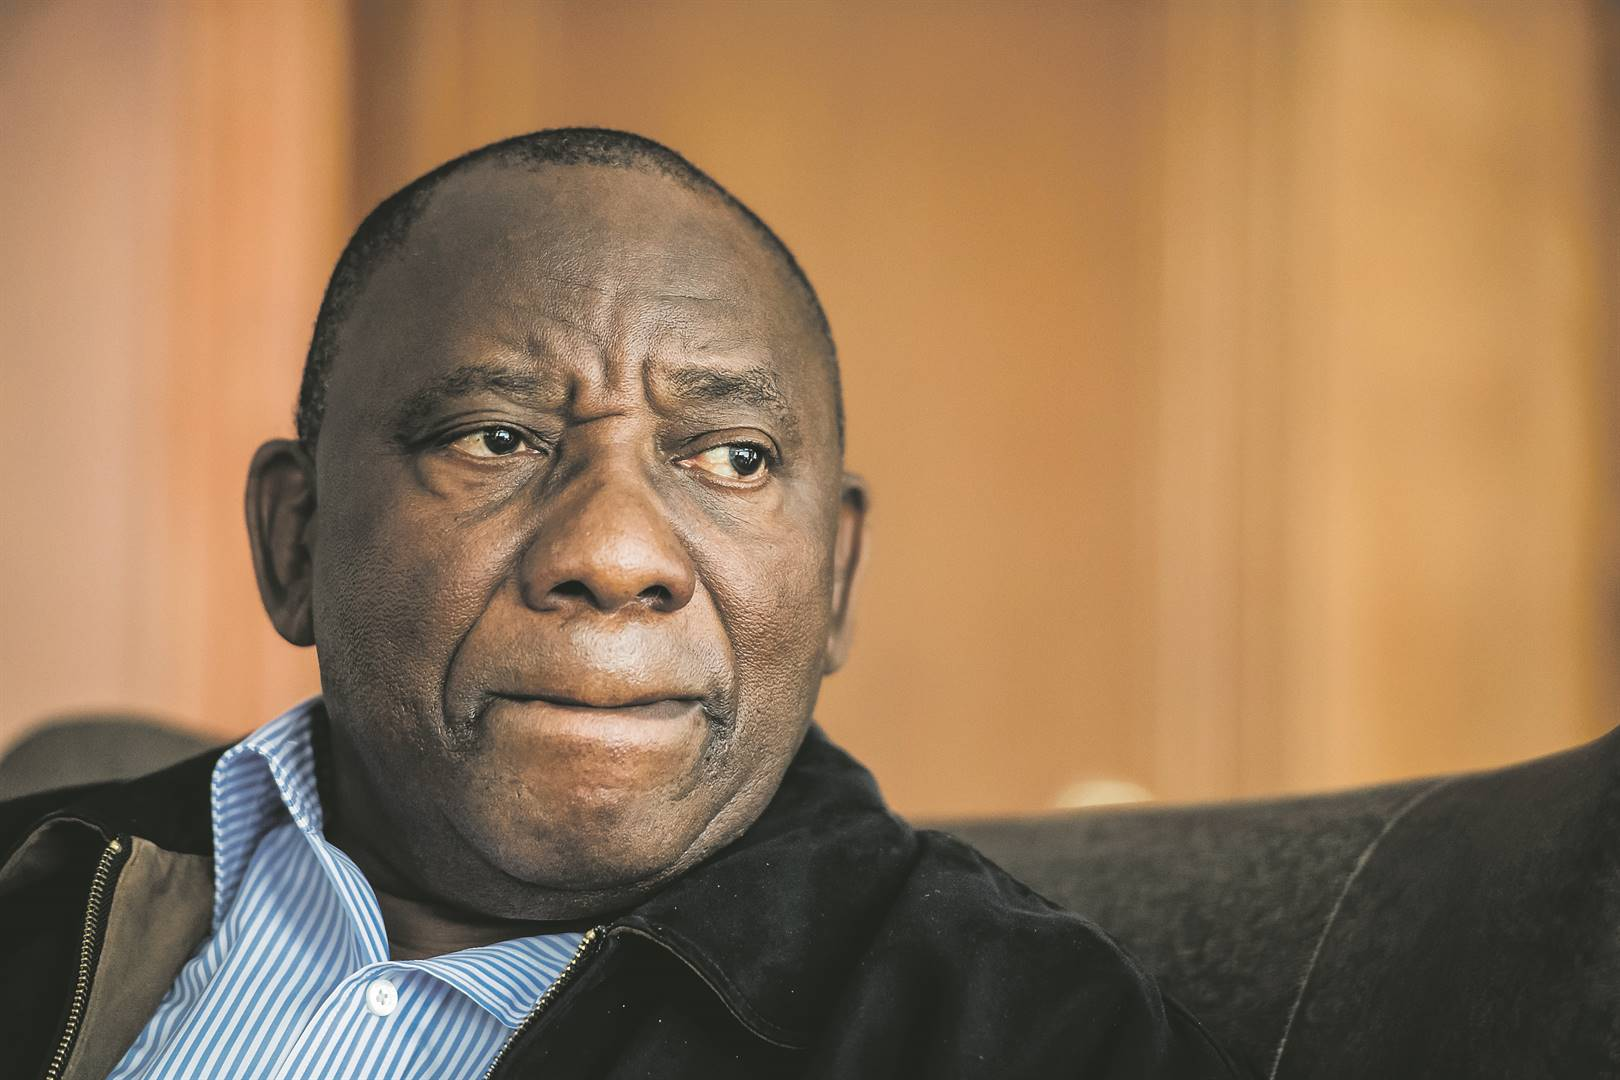 BREAKING | Ramaphosa says he will step aside if charged with corruption | News24